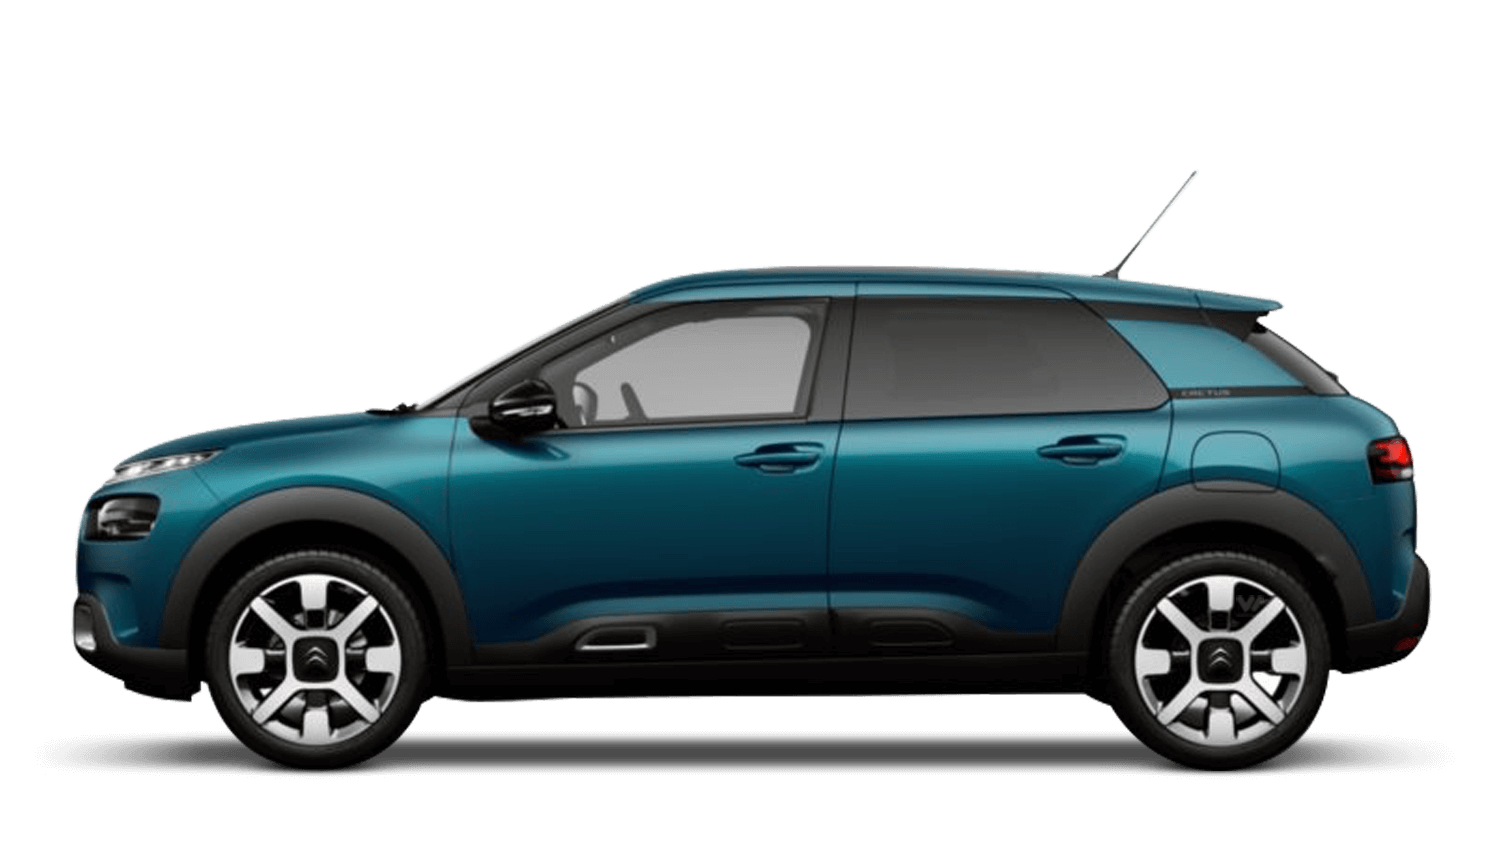 Emerald Blue (Metallic) Citroën C4 Cactus Hatch